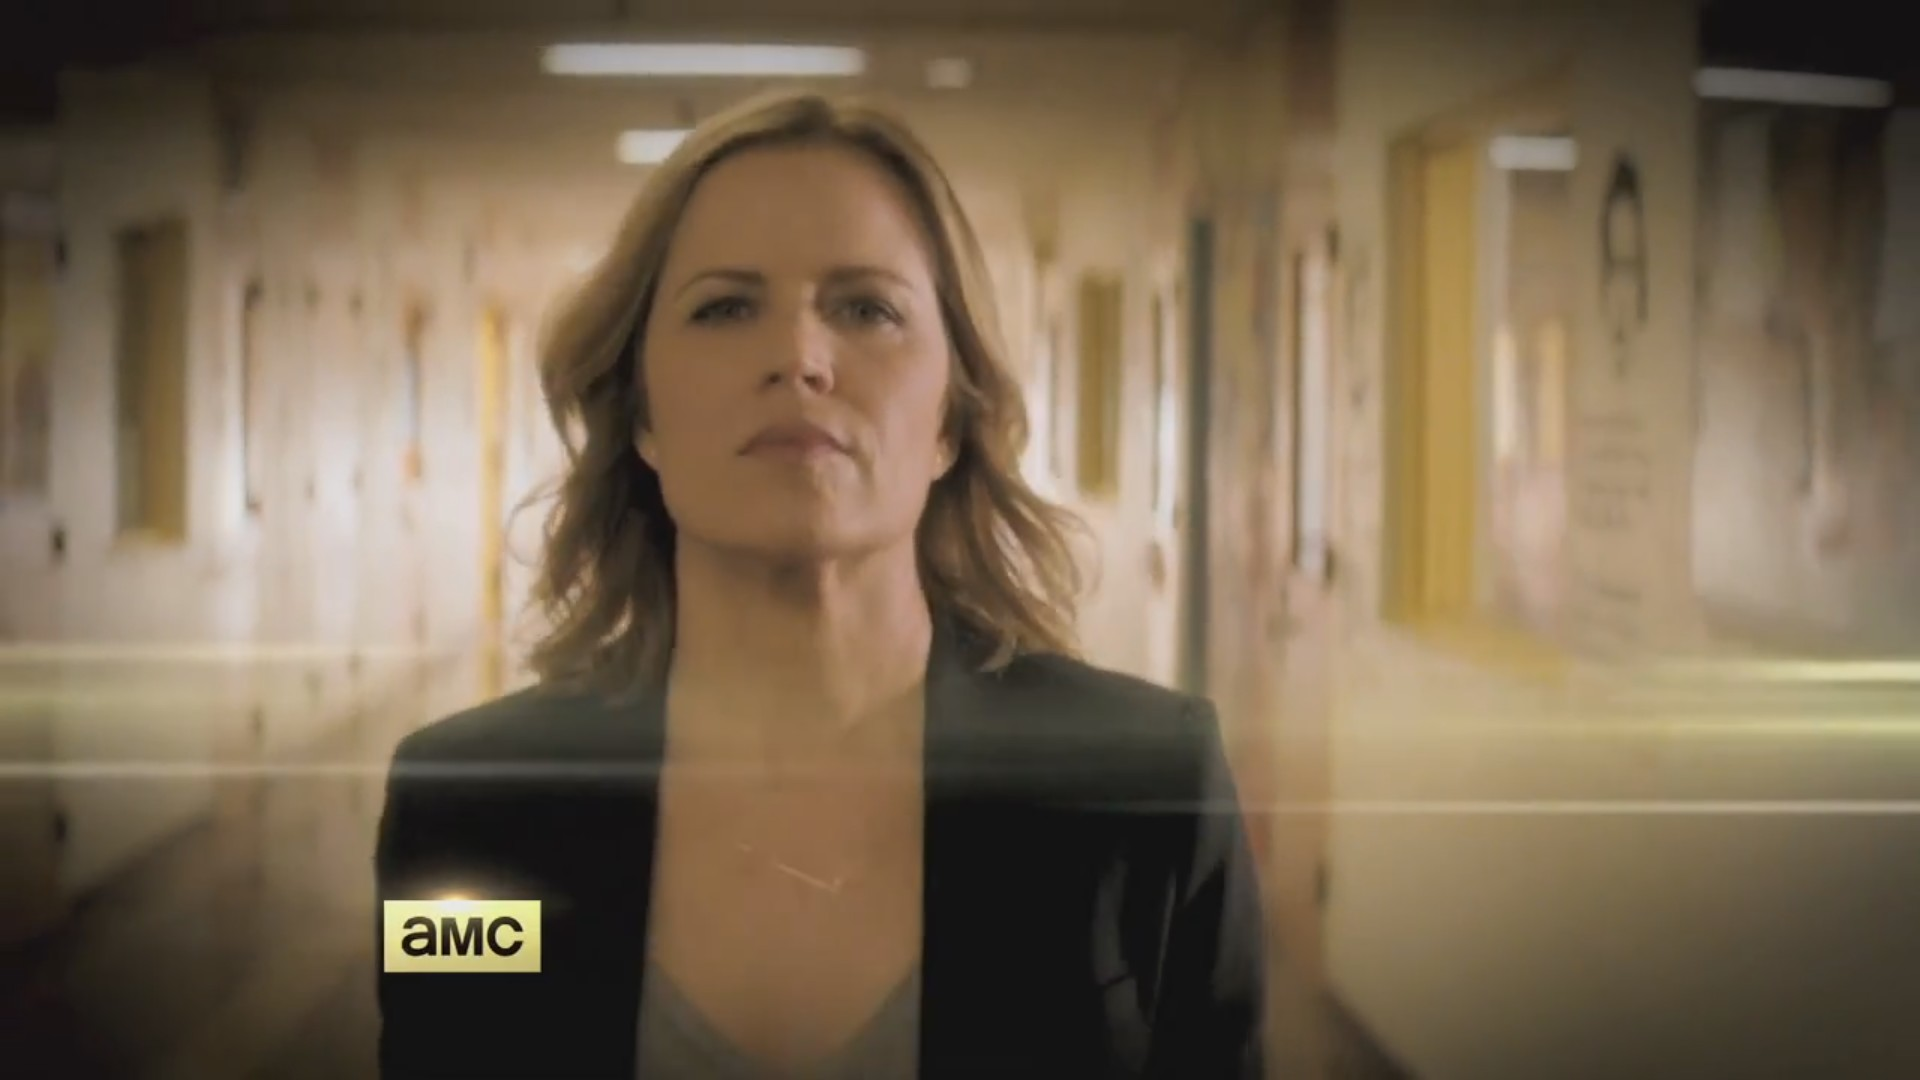 fear-the-walking-dead-amc-promo-006